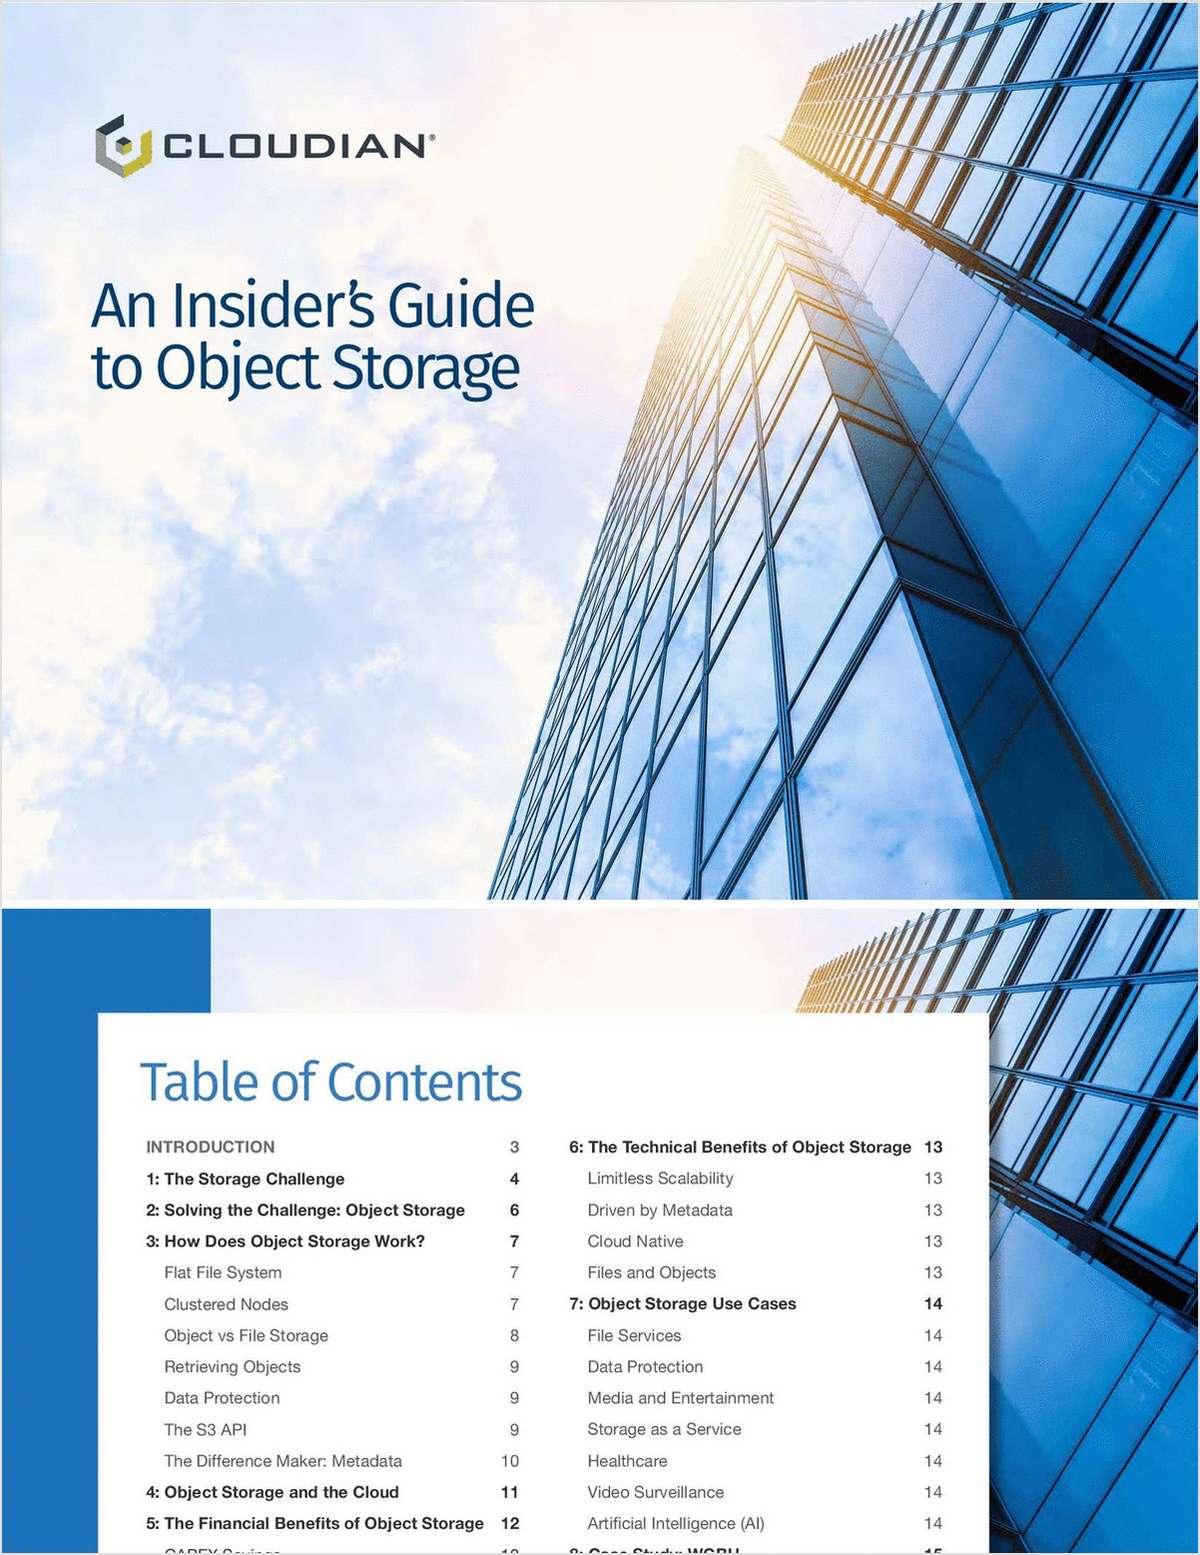 An Insider's Guide to Object Storage